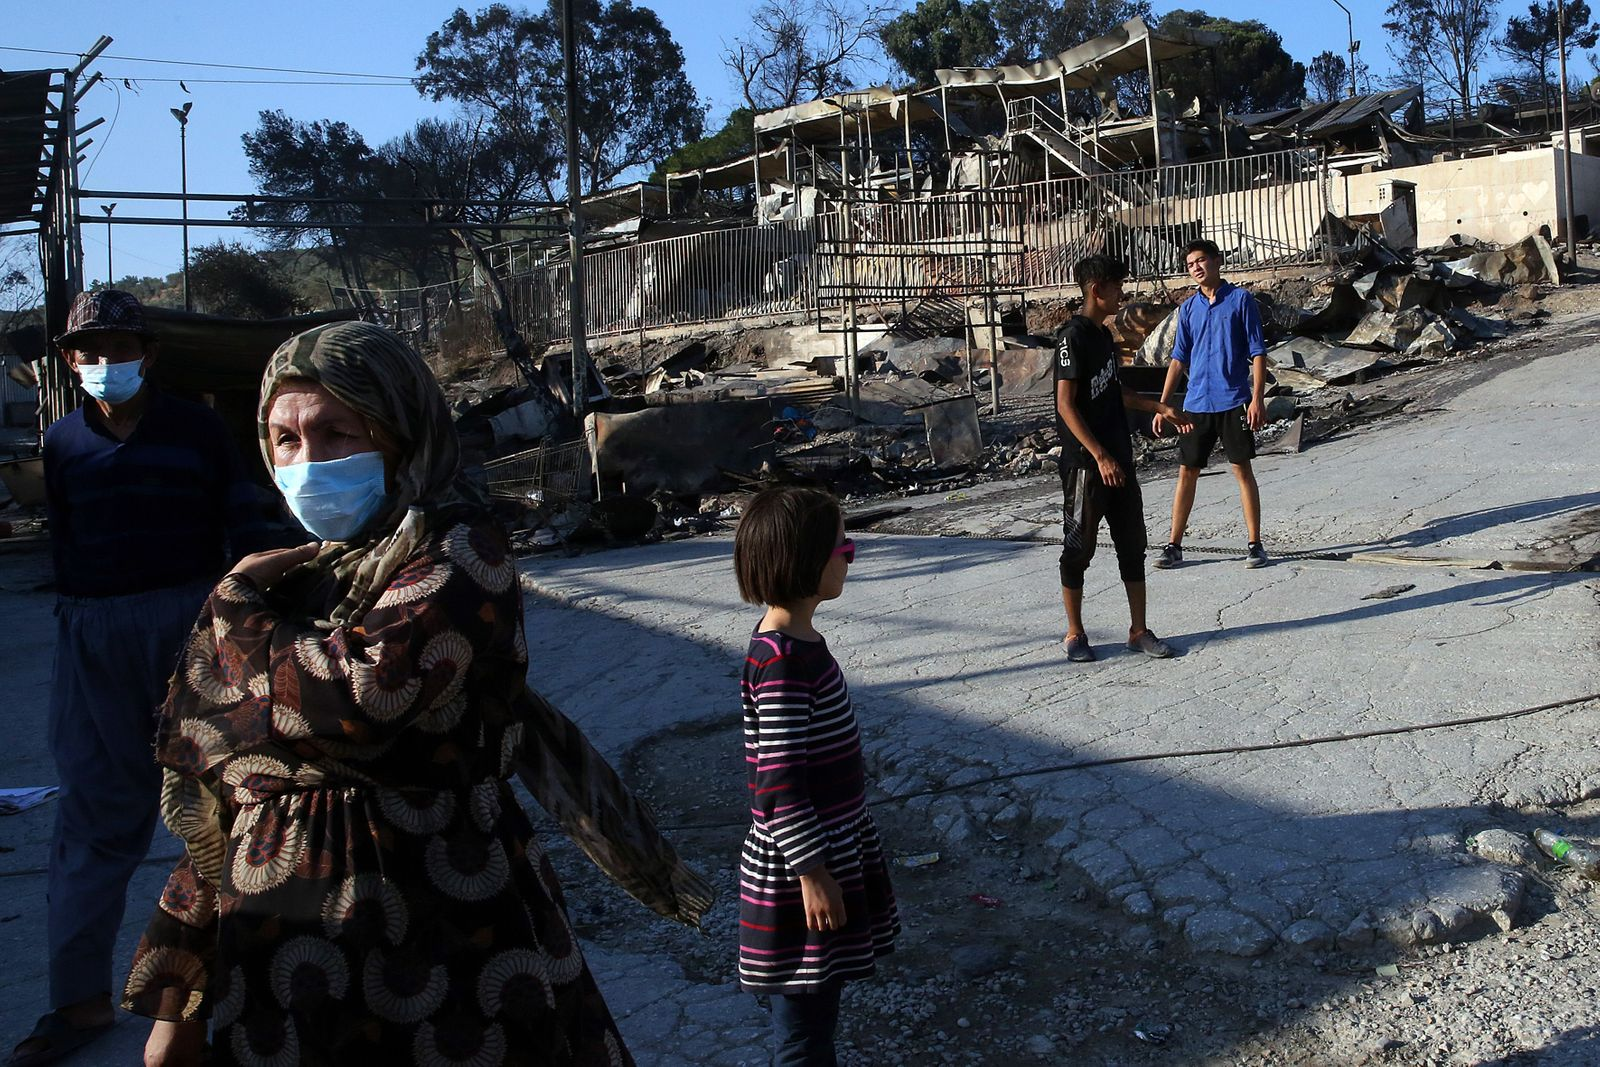 Fire at Moria refugee camp in Greece - 09 Sep 2020